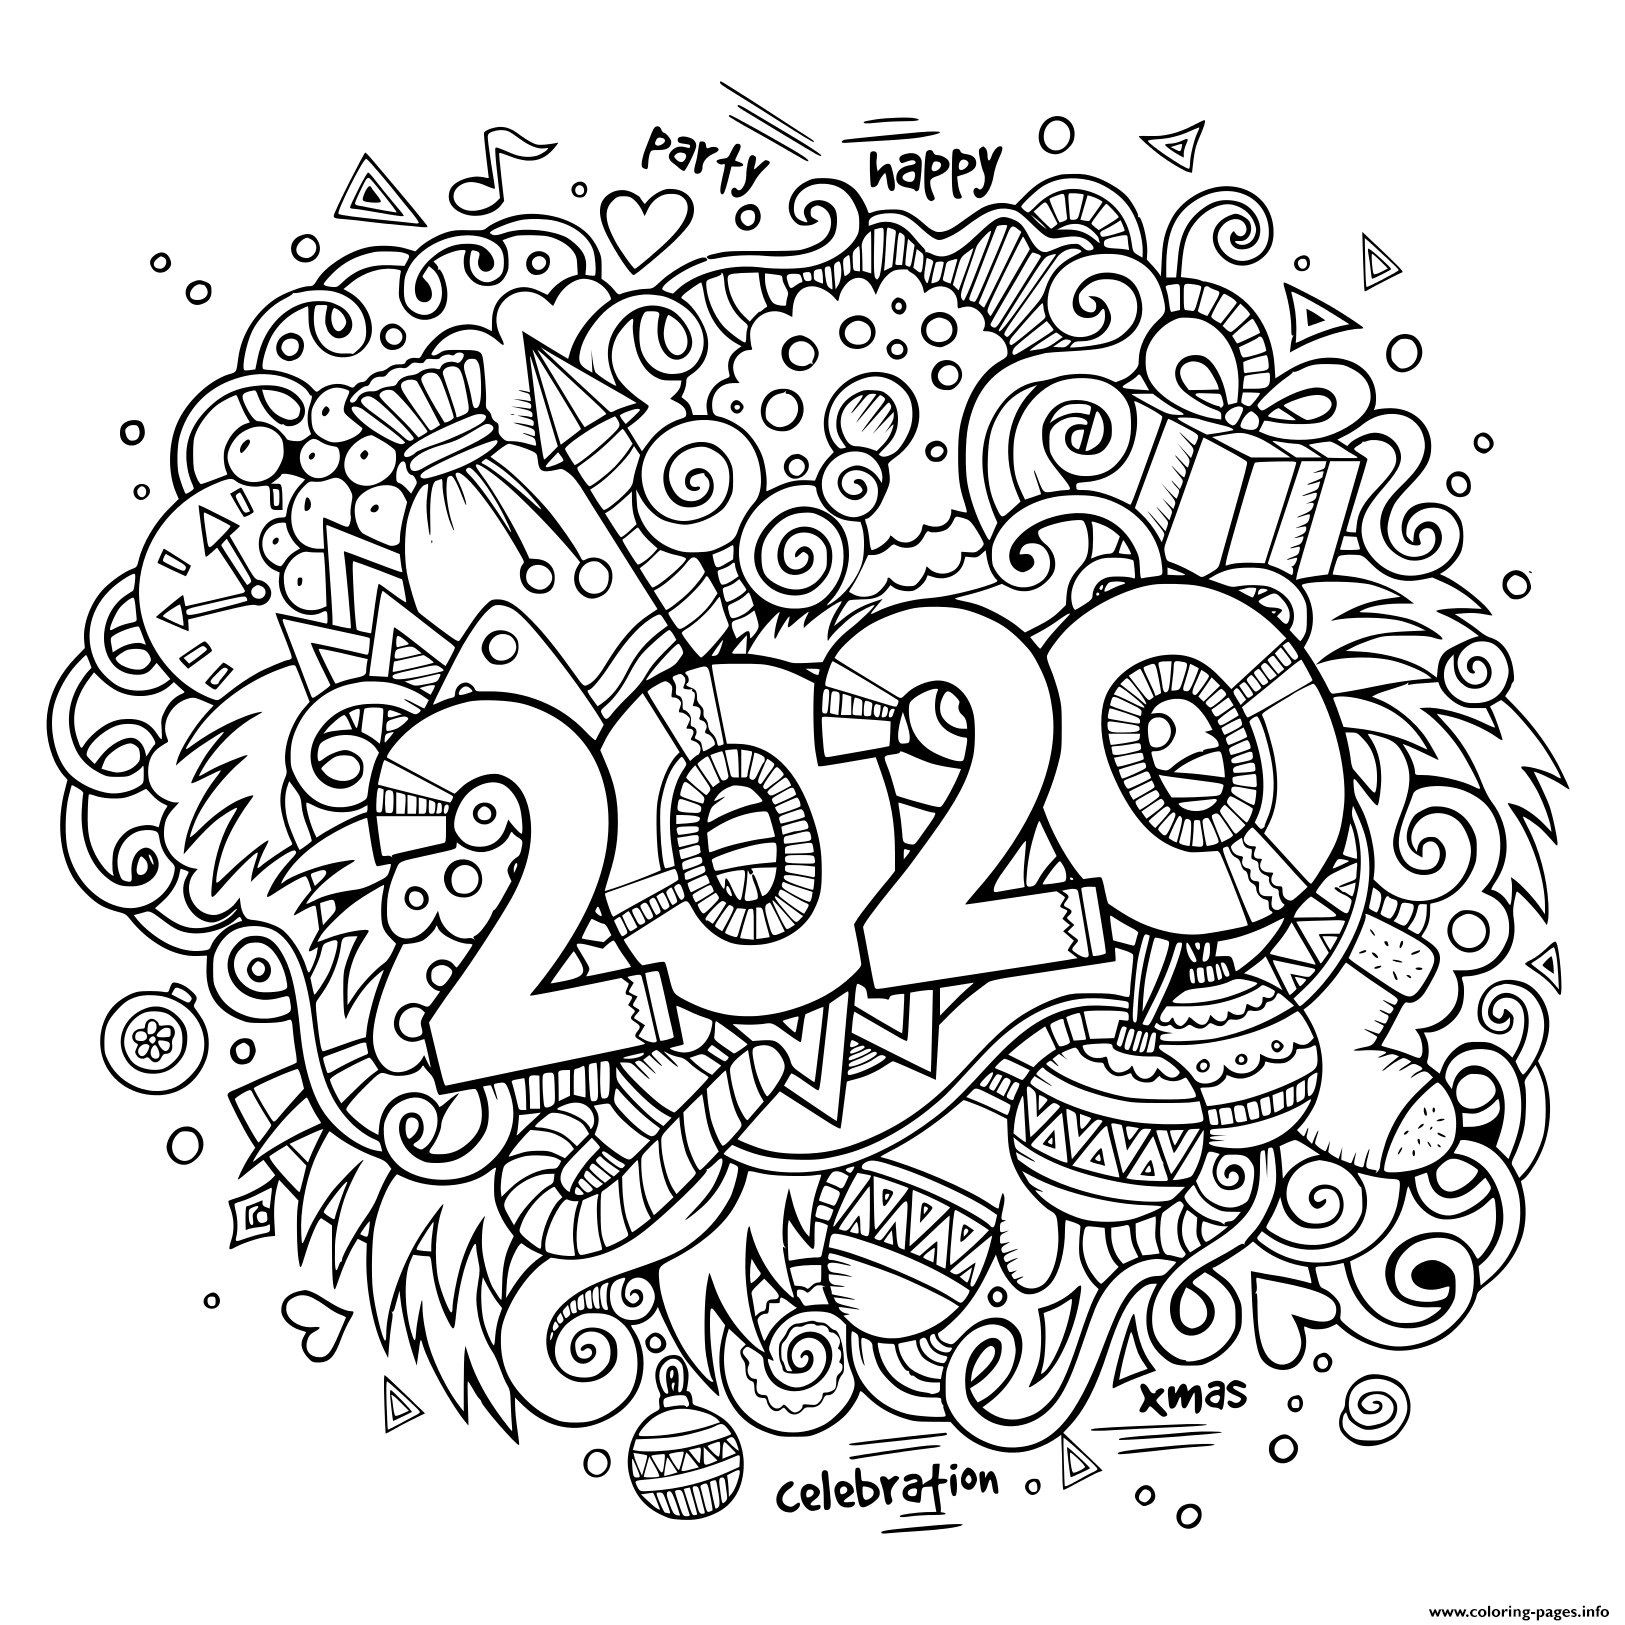 vbs coloring pages 2020 happy new year 2020 coloring pages coloring home coloring pages vbs 2020